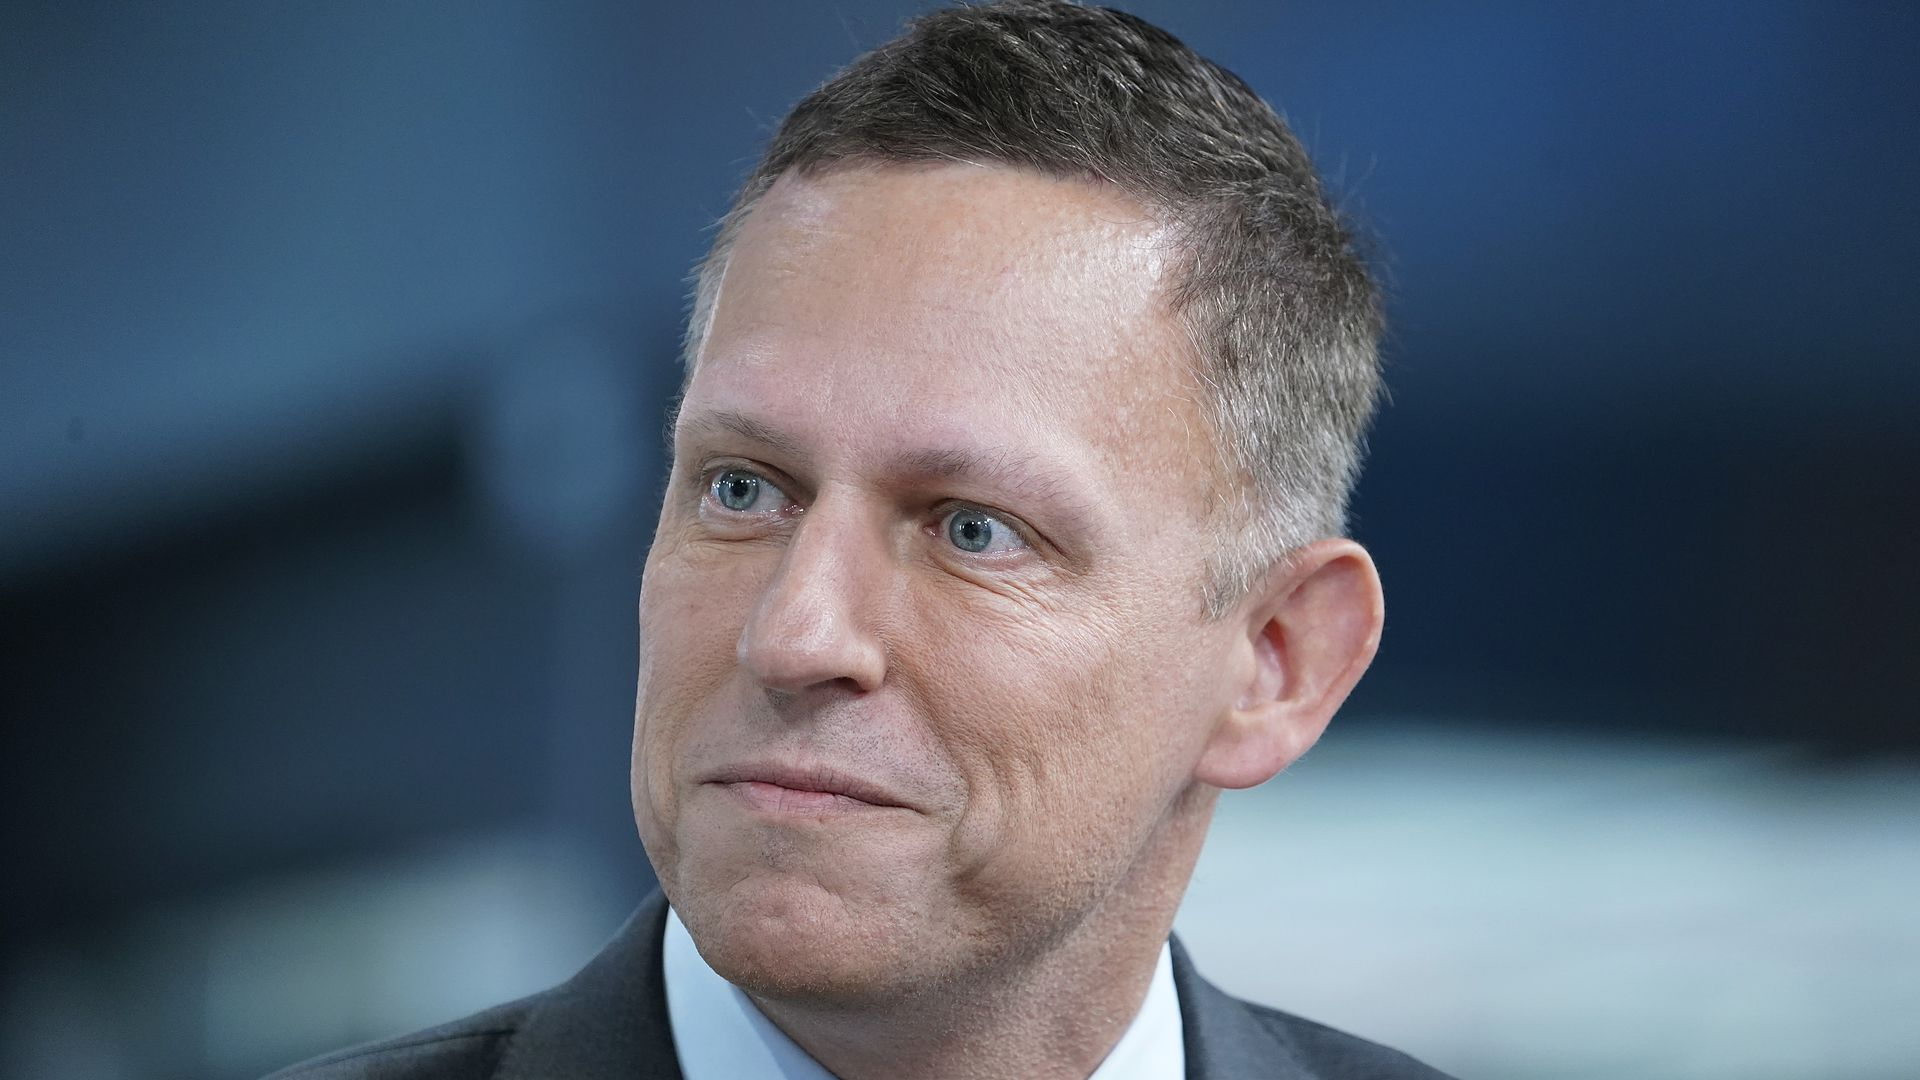 Peter Thiel, the bridge between Trump and Facebook - Axios